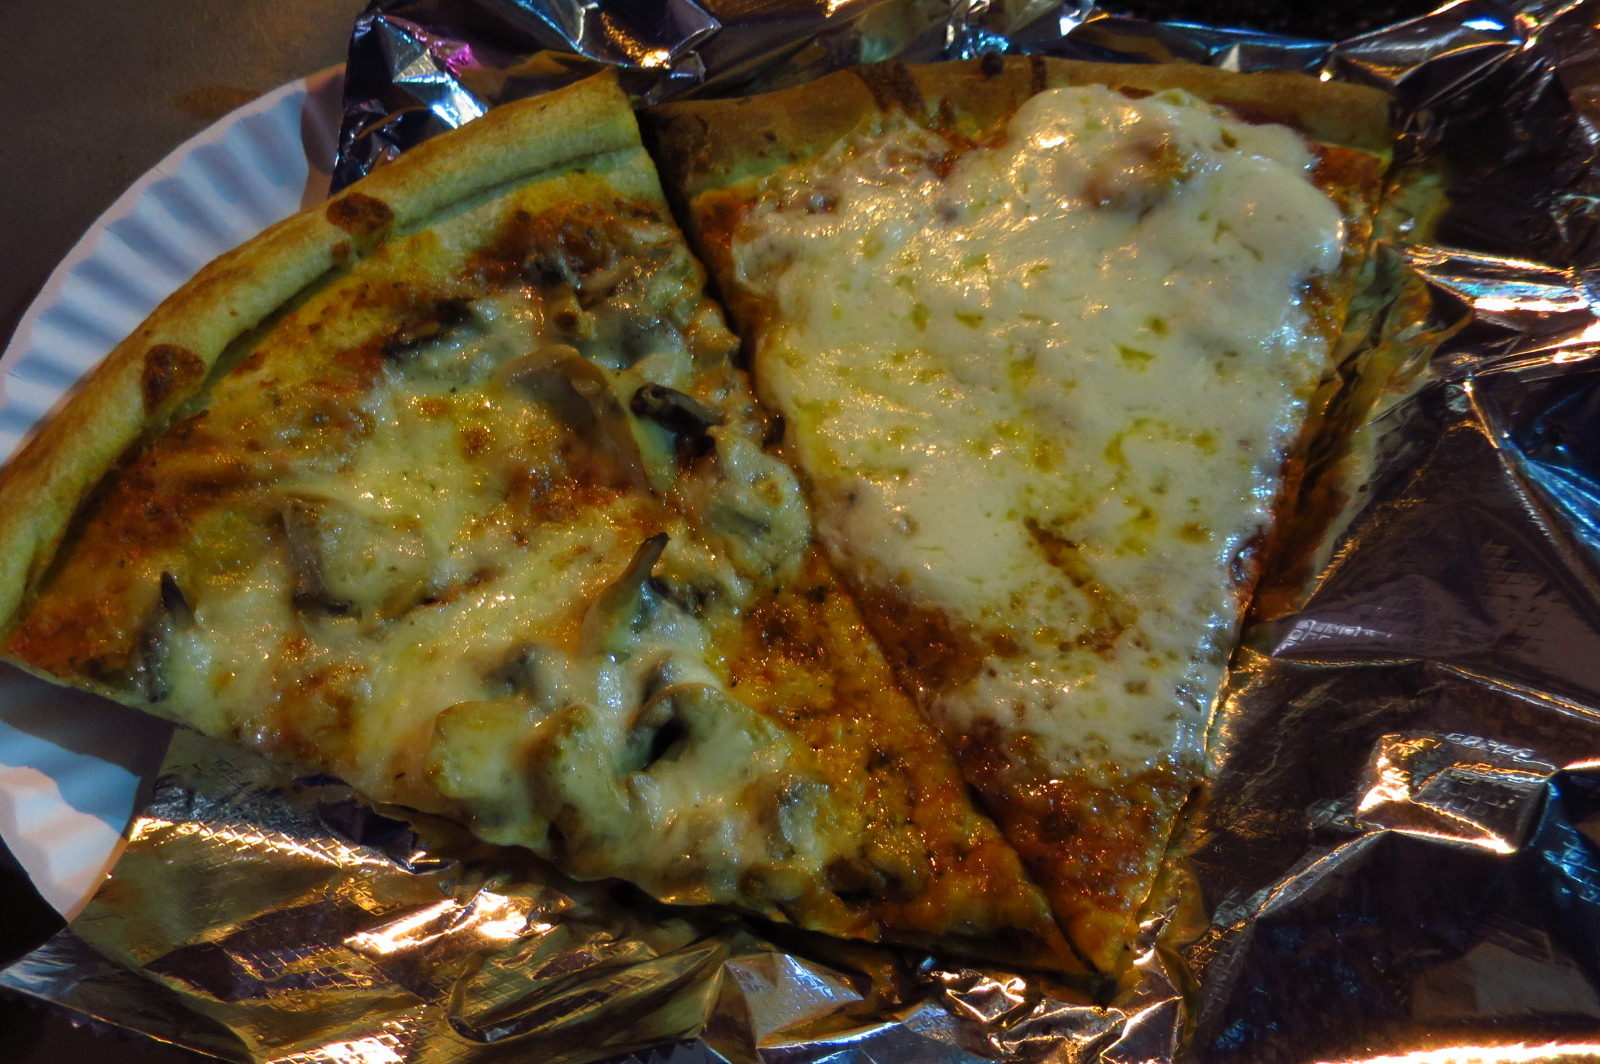 99 Cent Express Pizza Midtown Manhattan NYC So This Was Supper